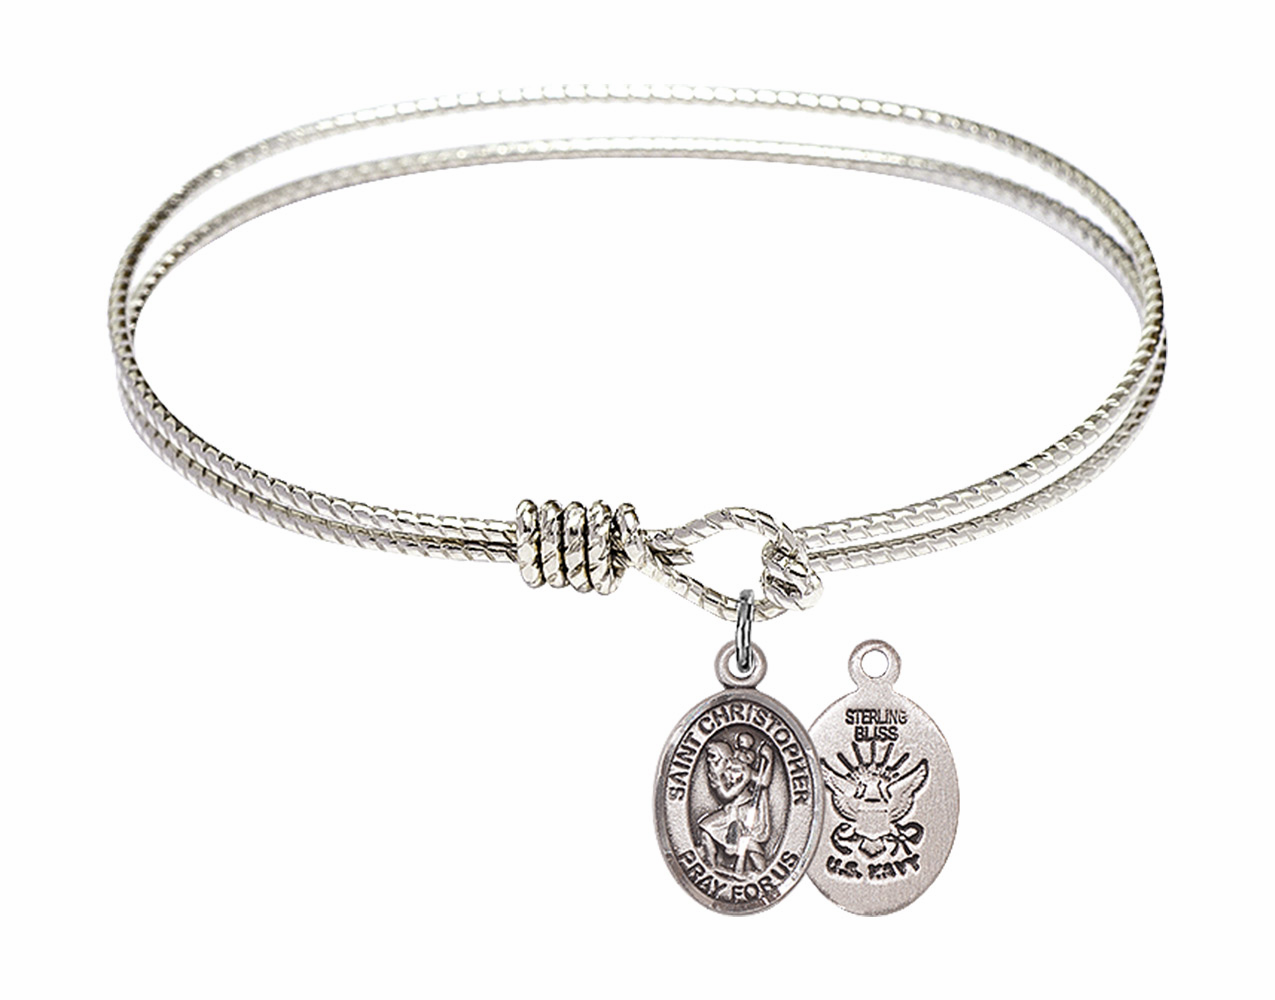 Round Loop St Christopher Navy Bangle Sterling Silver Charm  Bracelet by Bliss